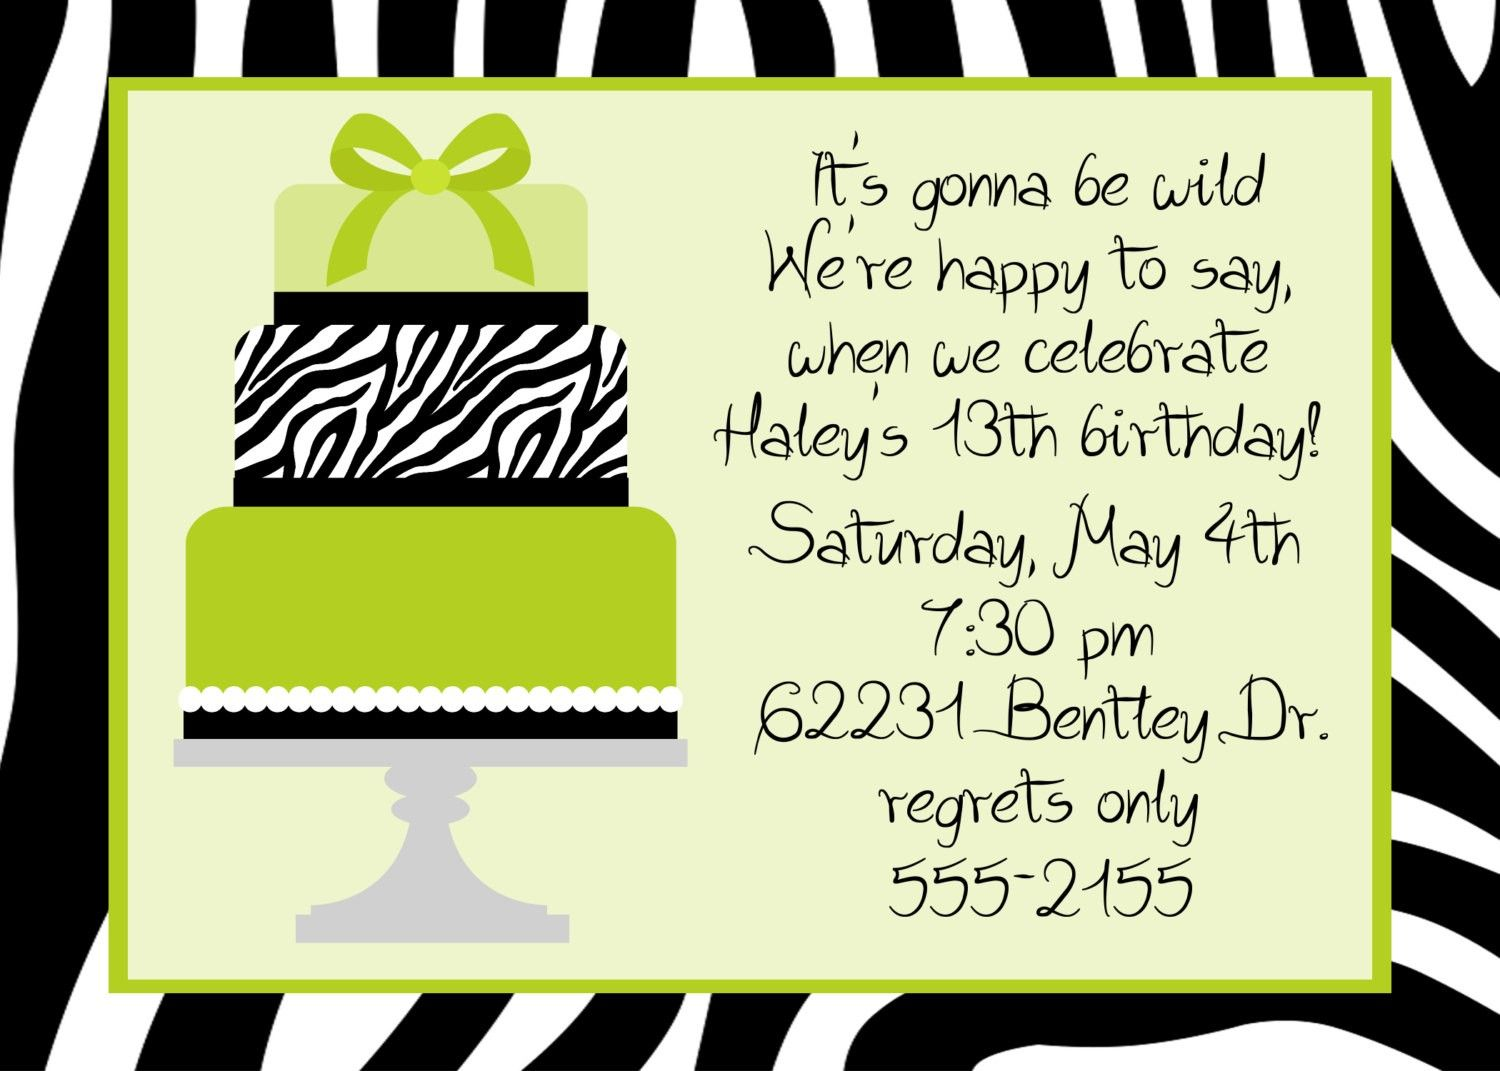 Black and white themed party invitations wording black and white black and white themed party invitations wording black and white birthday httpwww filmwisefo Image collections